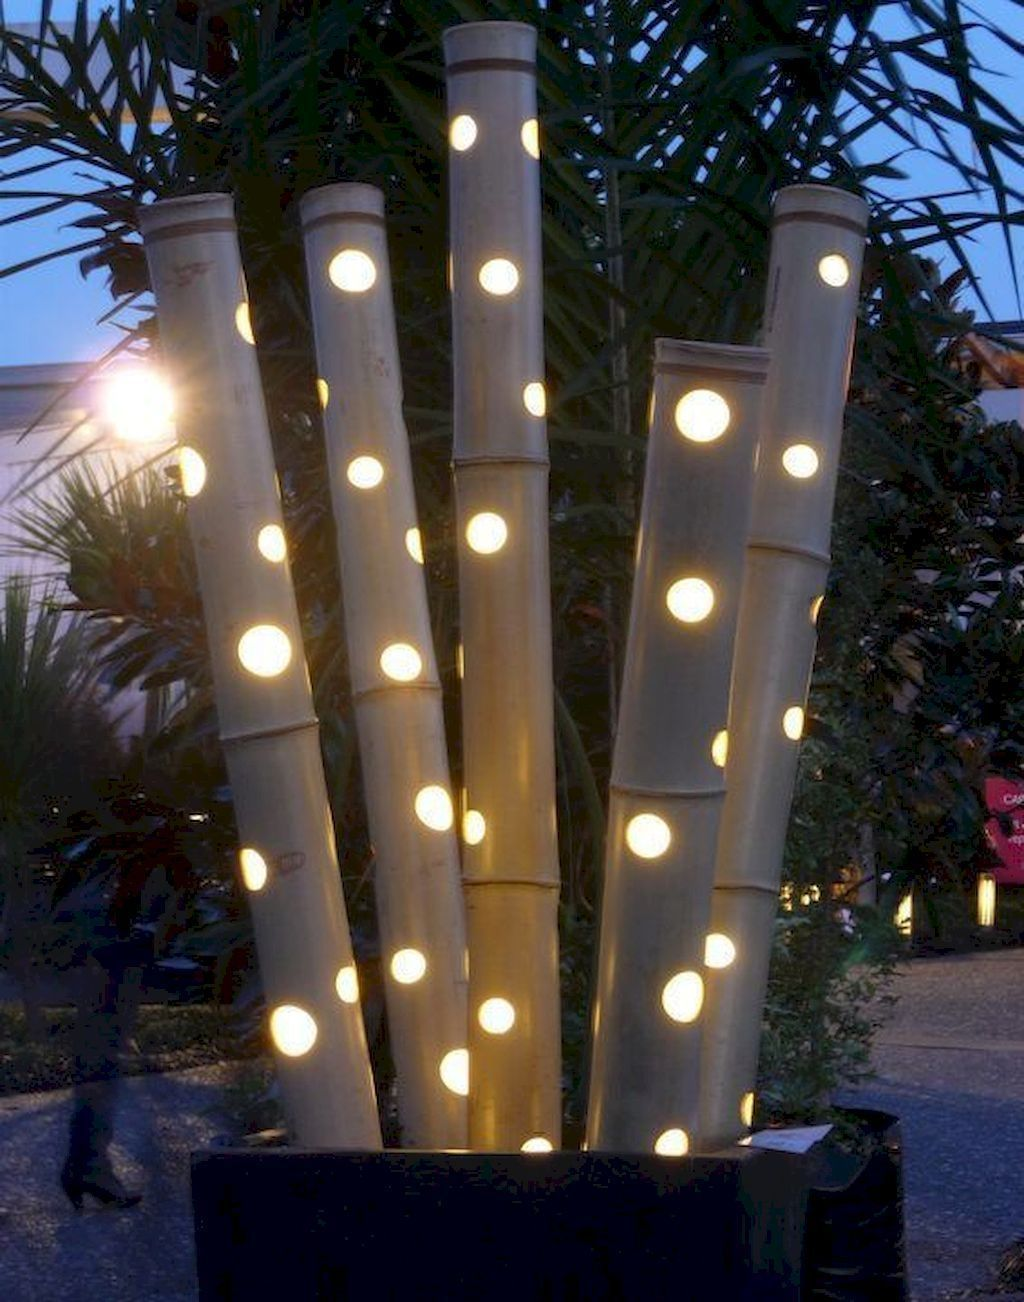 Awesome 47 Decorative Lighting Design More At Https Homishome Com 2019 05 27 47 Decorative L Garden Lighting Design Diy Outdoor Lighting Solar Lights Garden